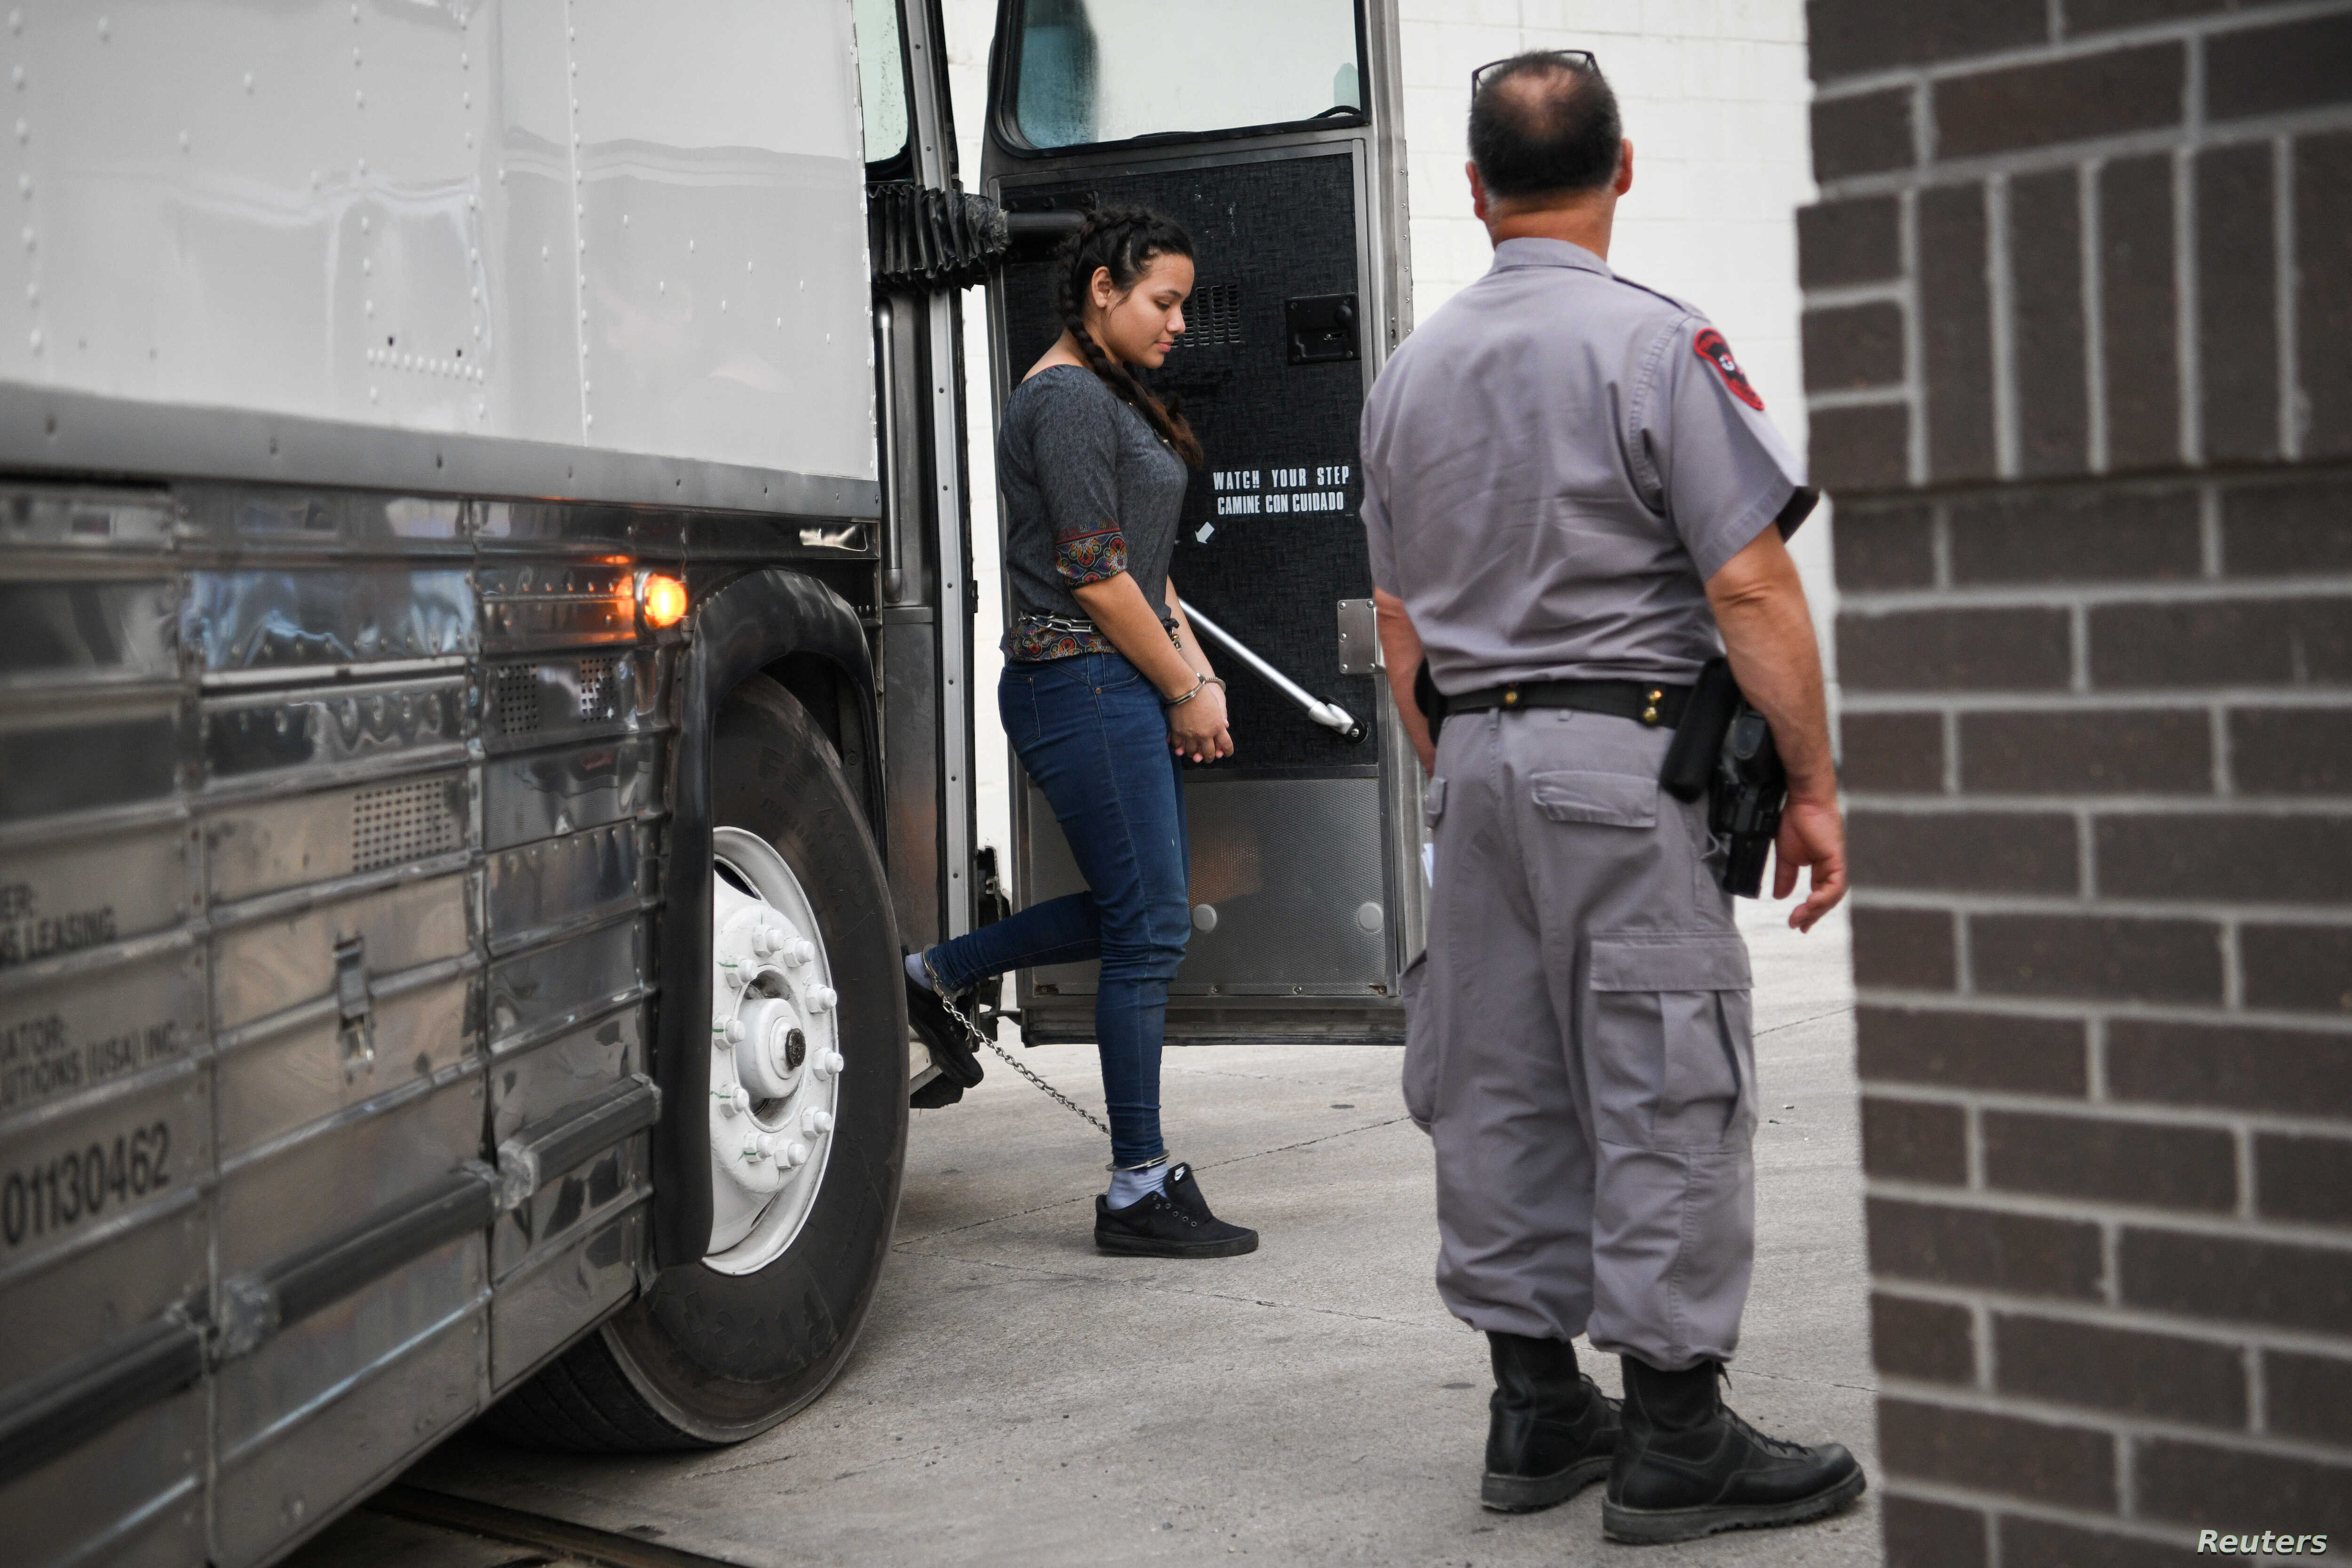 A shackled migrant woman in federal custody arrives for an immigration hearing at the U.S. federal courthouse in McAllen, Texas, U.S., May 20, 2019.